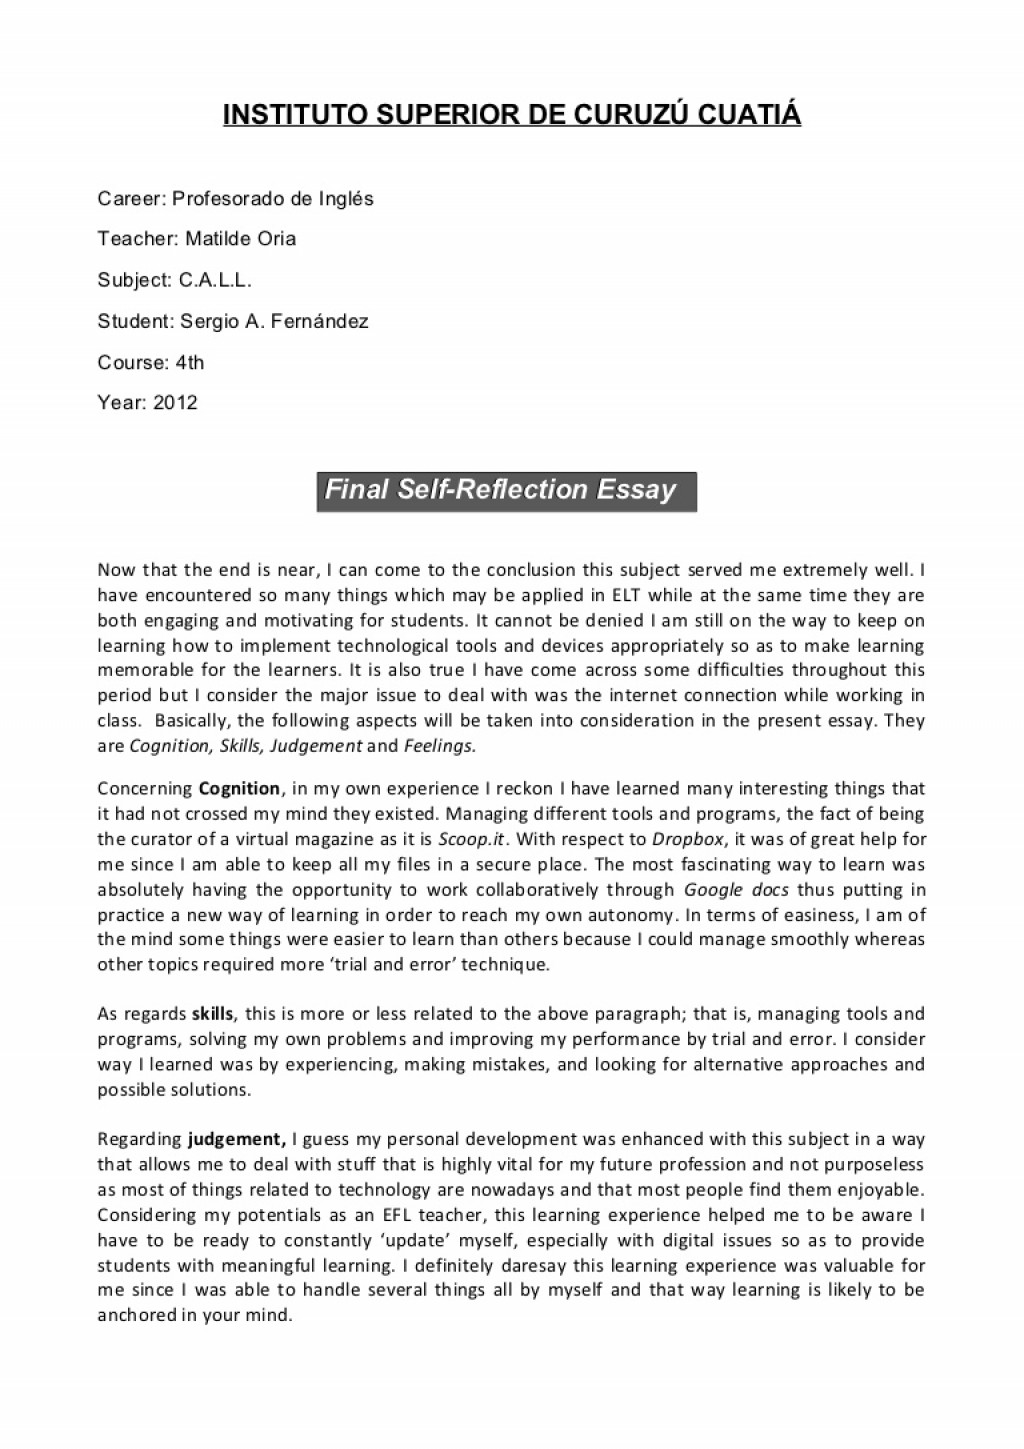 003 Reflection Essay Example Sergio Finalself Reflectionessay Phpapp01 Thumbnail Formidable Self Rubric Paper Outline Template Reflective Writing Format Large